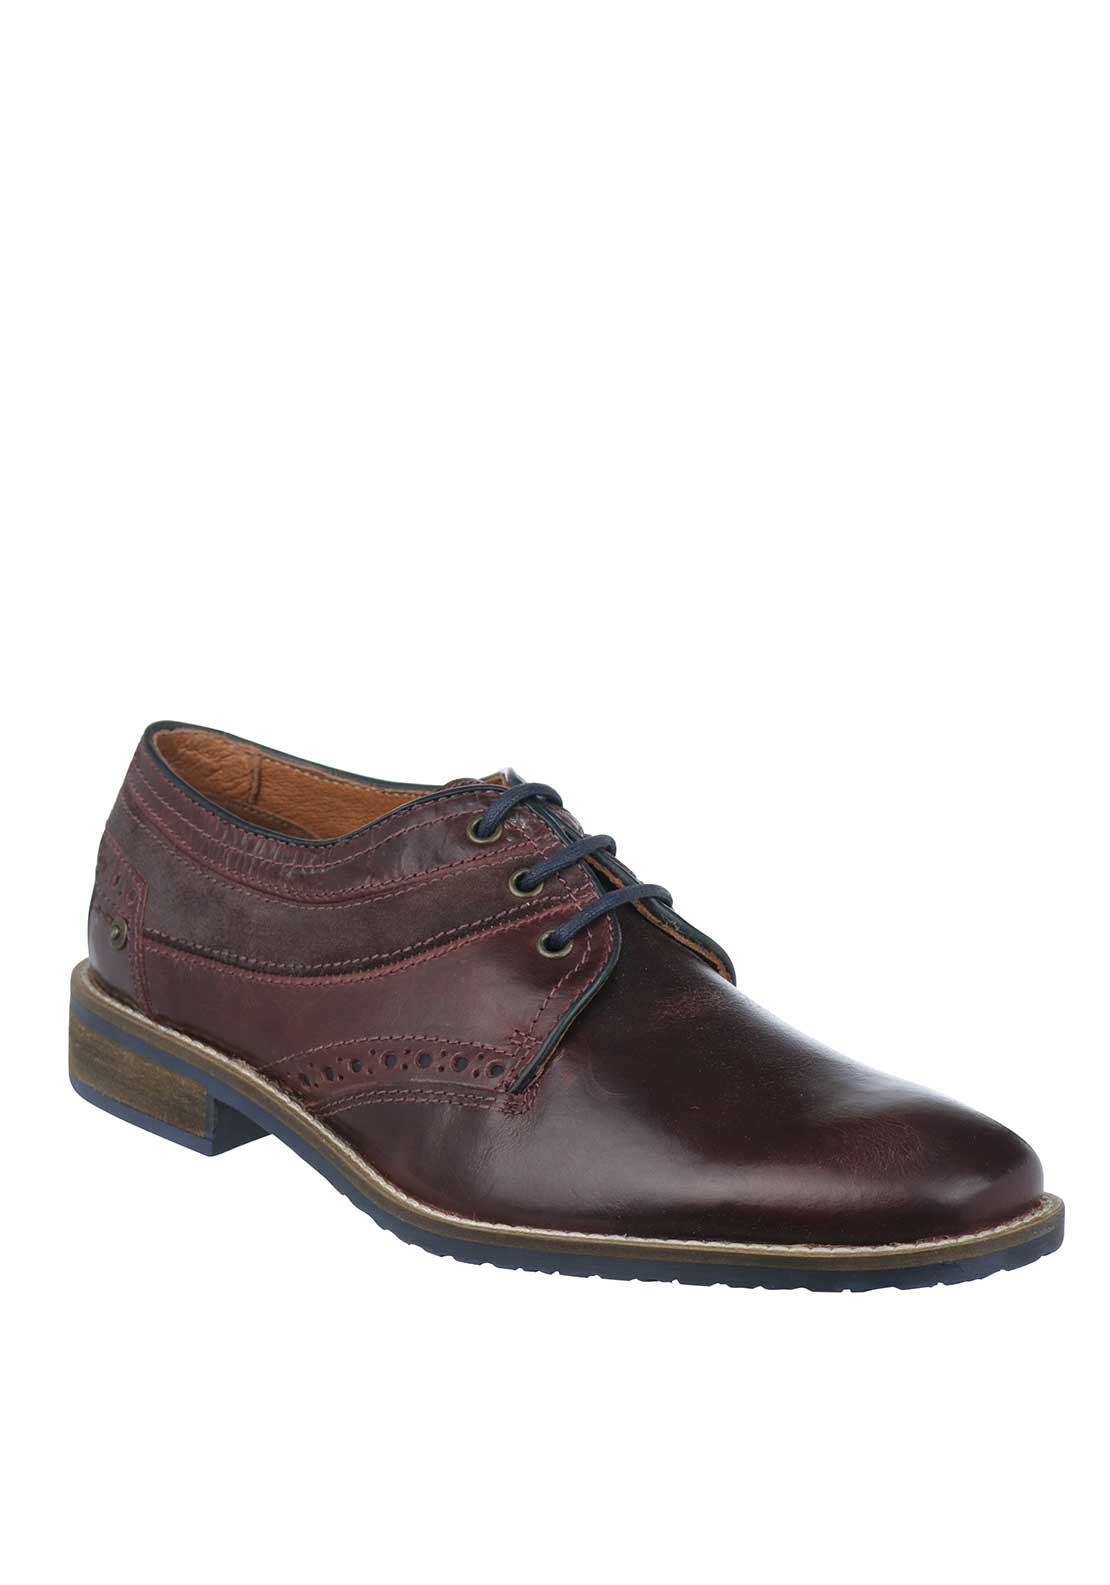 Dubarry Mens Simba Lace-Up Leather Shoe, Burgundy